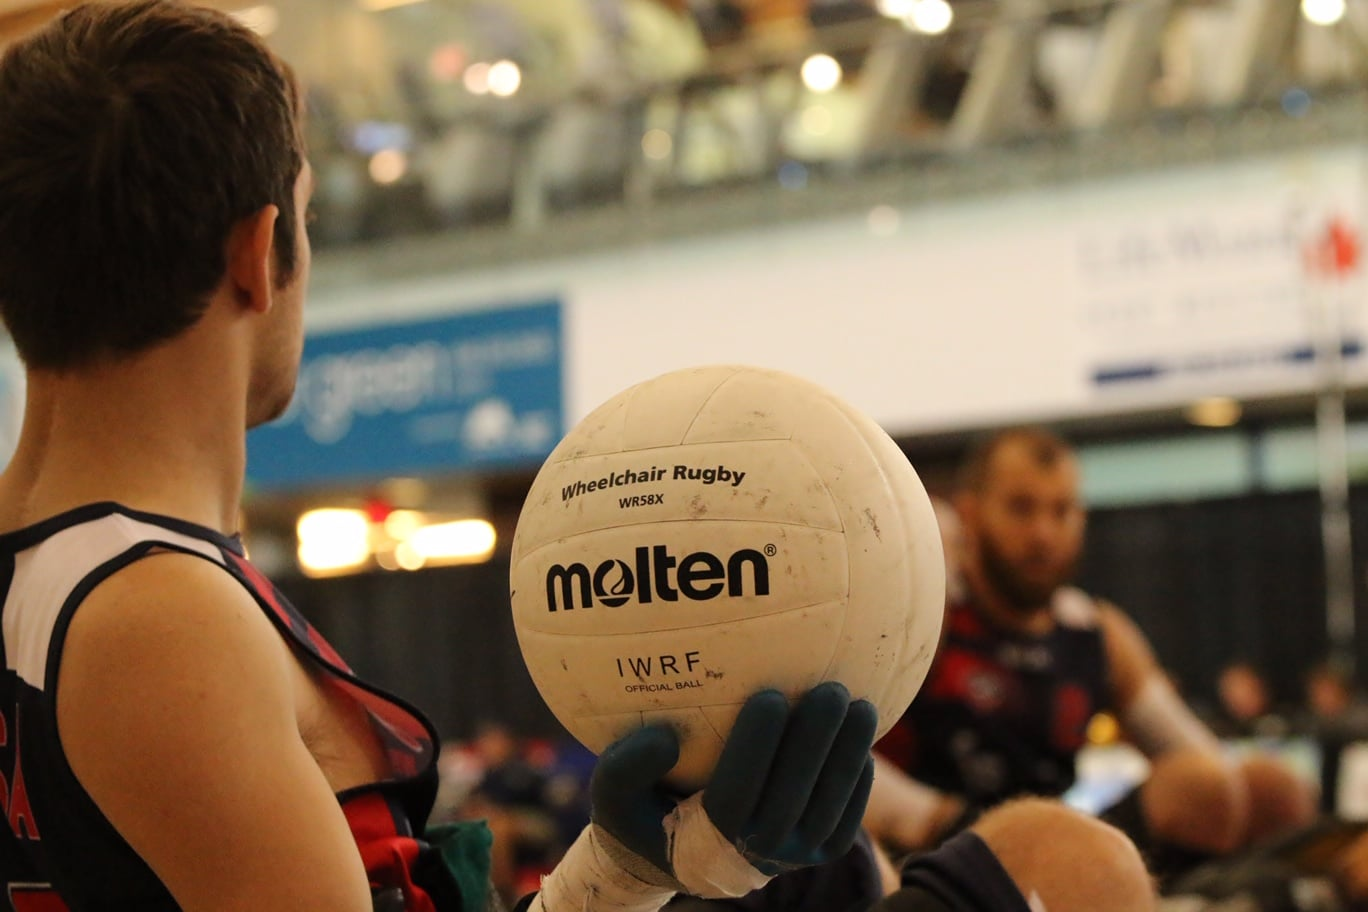 """A profile view of Butler from the chest up holding a Molten volleyball that says, """"Wheelchair Rugby"""" and """"IWRF Official Ball."""""""